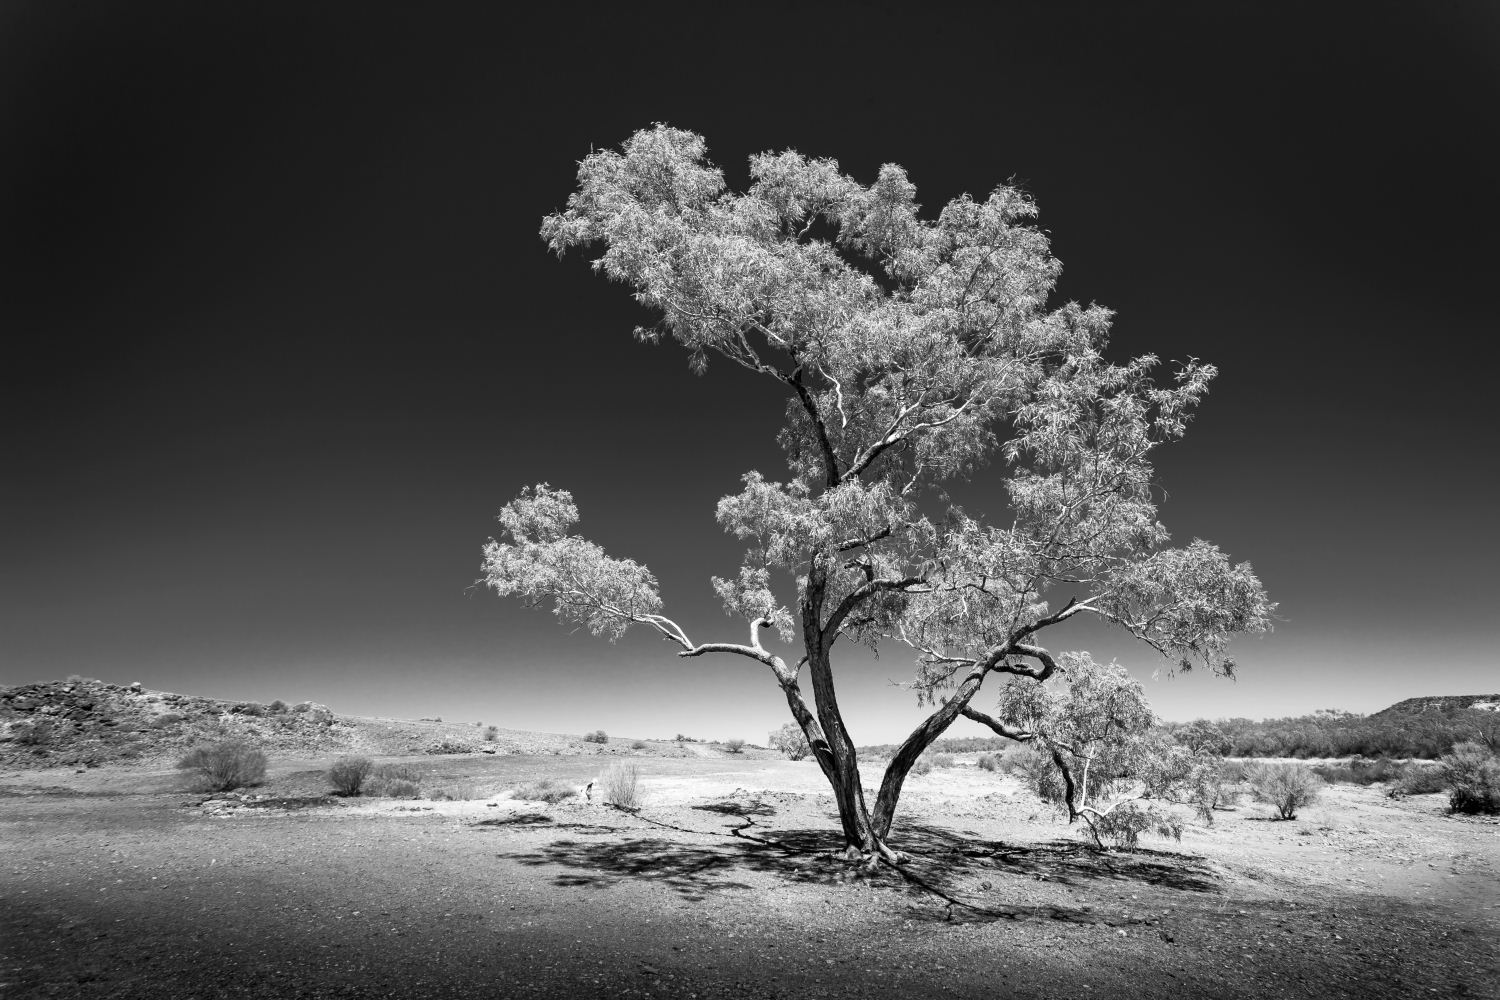 Lone Desert Tree, Marree, Oodnadatta Track, South Australia